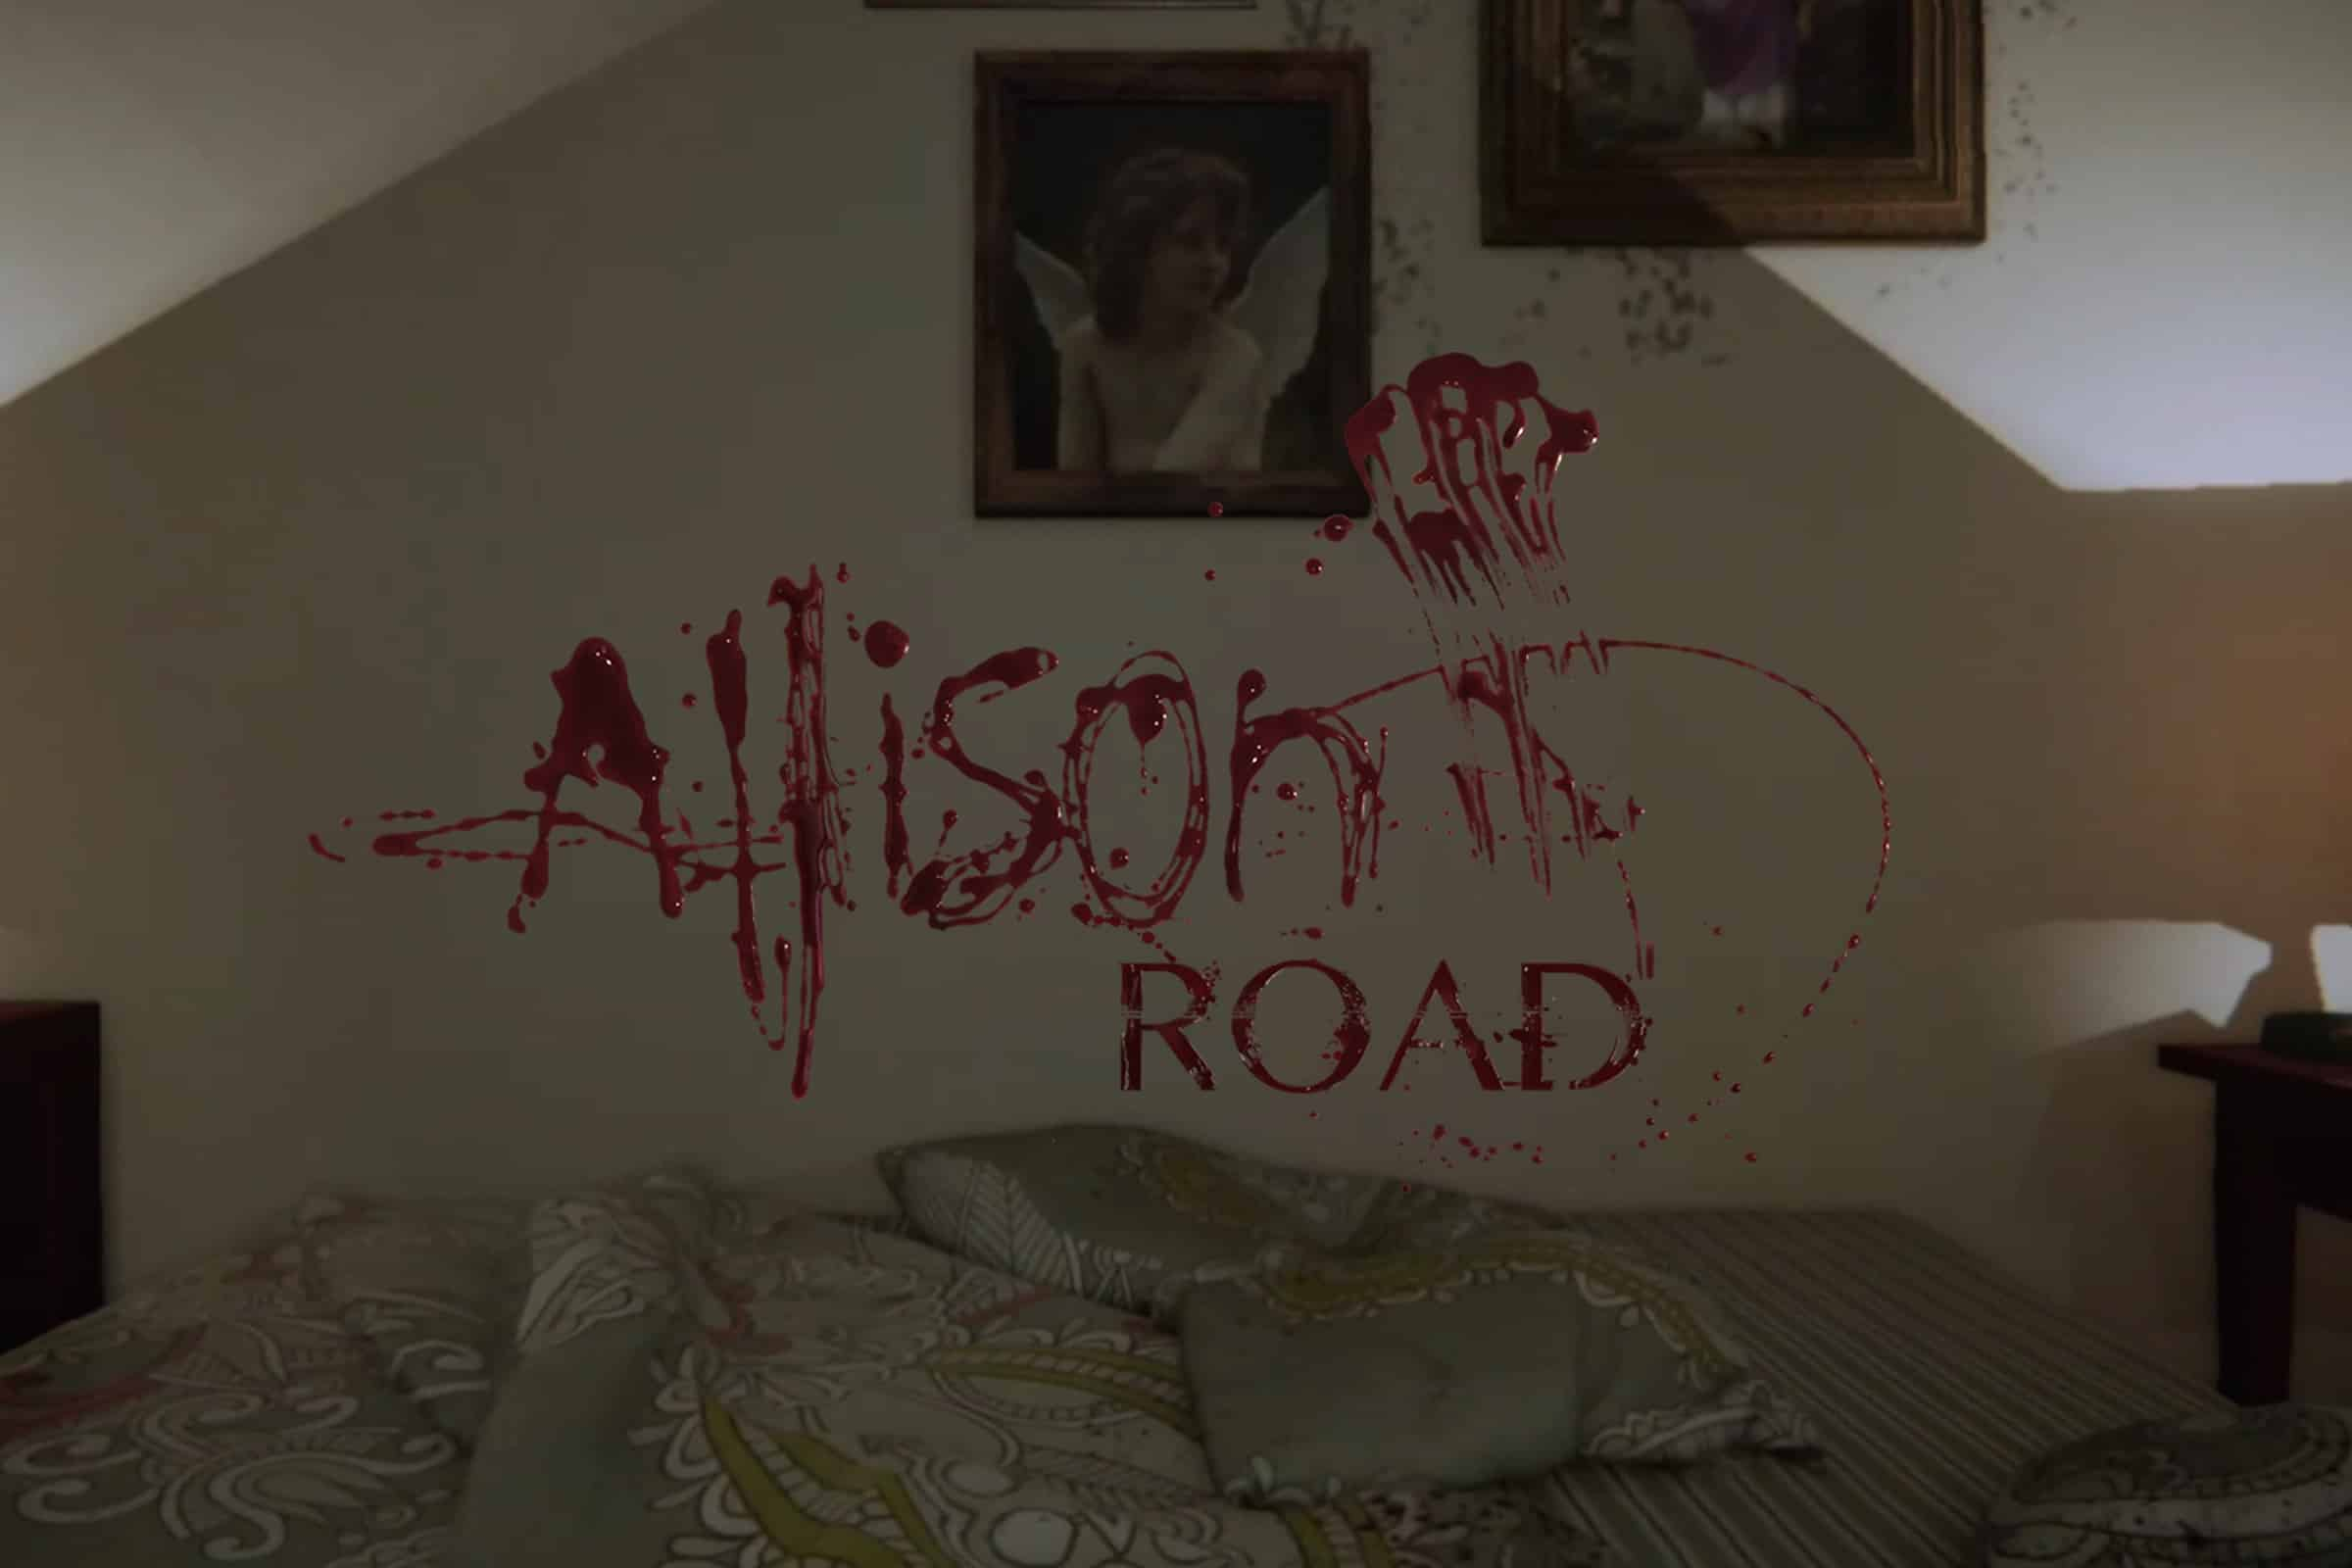 Allison Road è stato cancellato